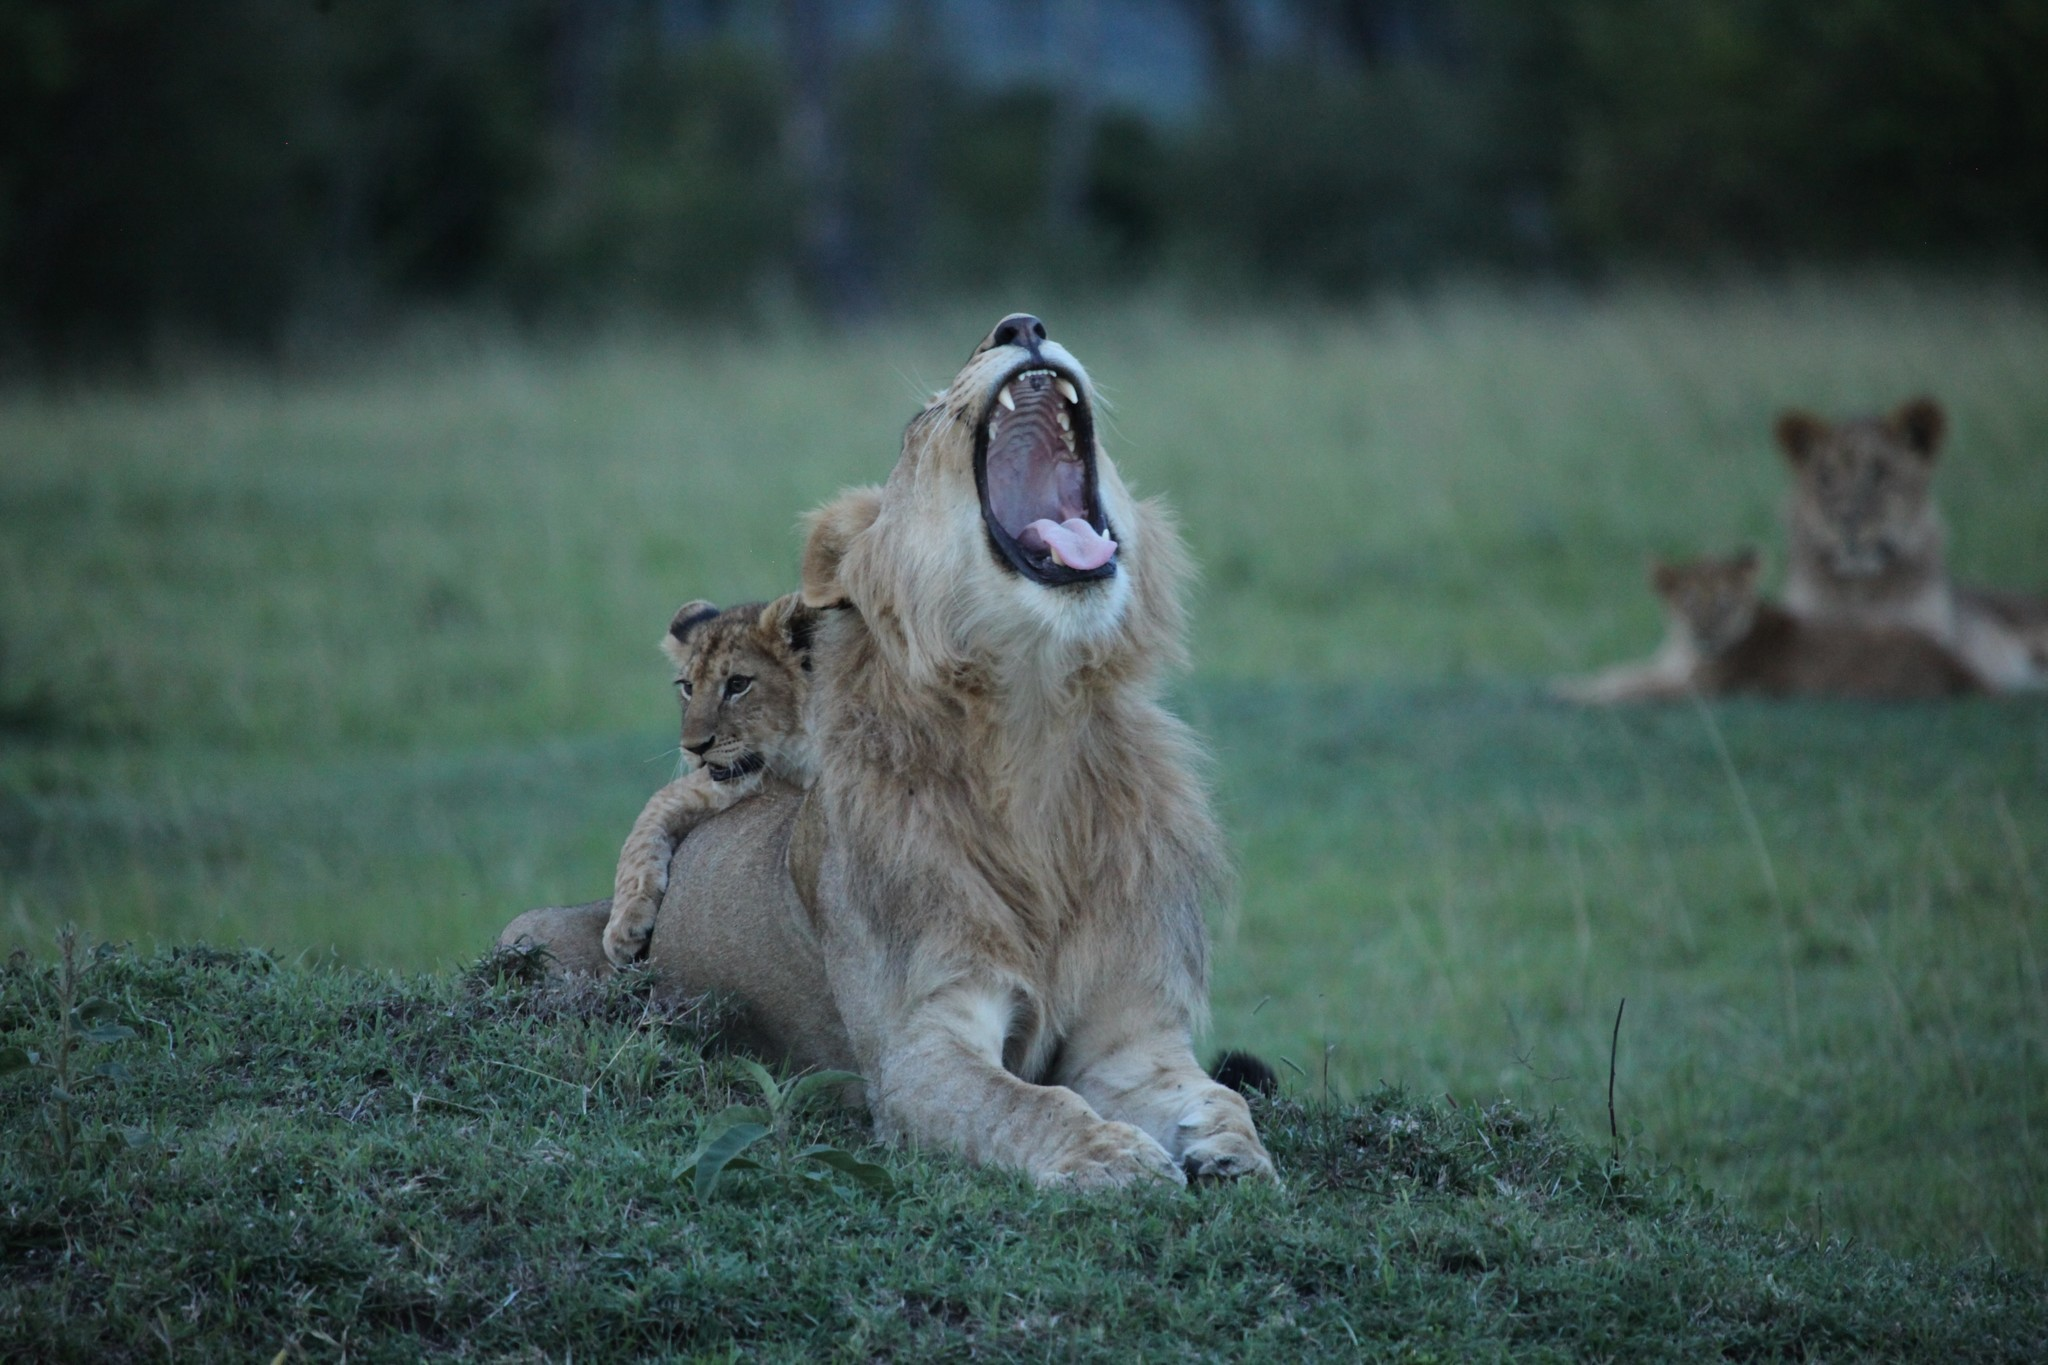 Lions in Maasai Mara National Reserve